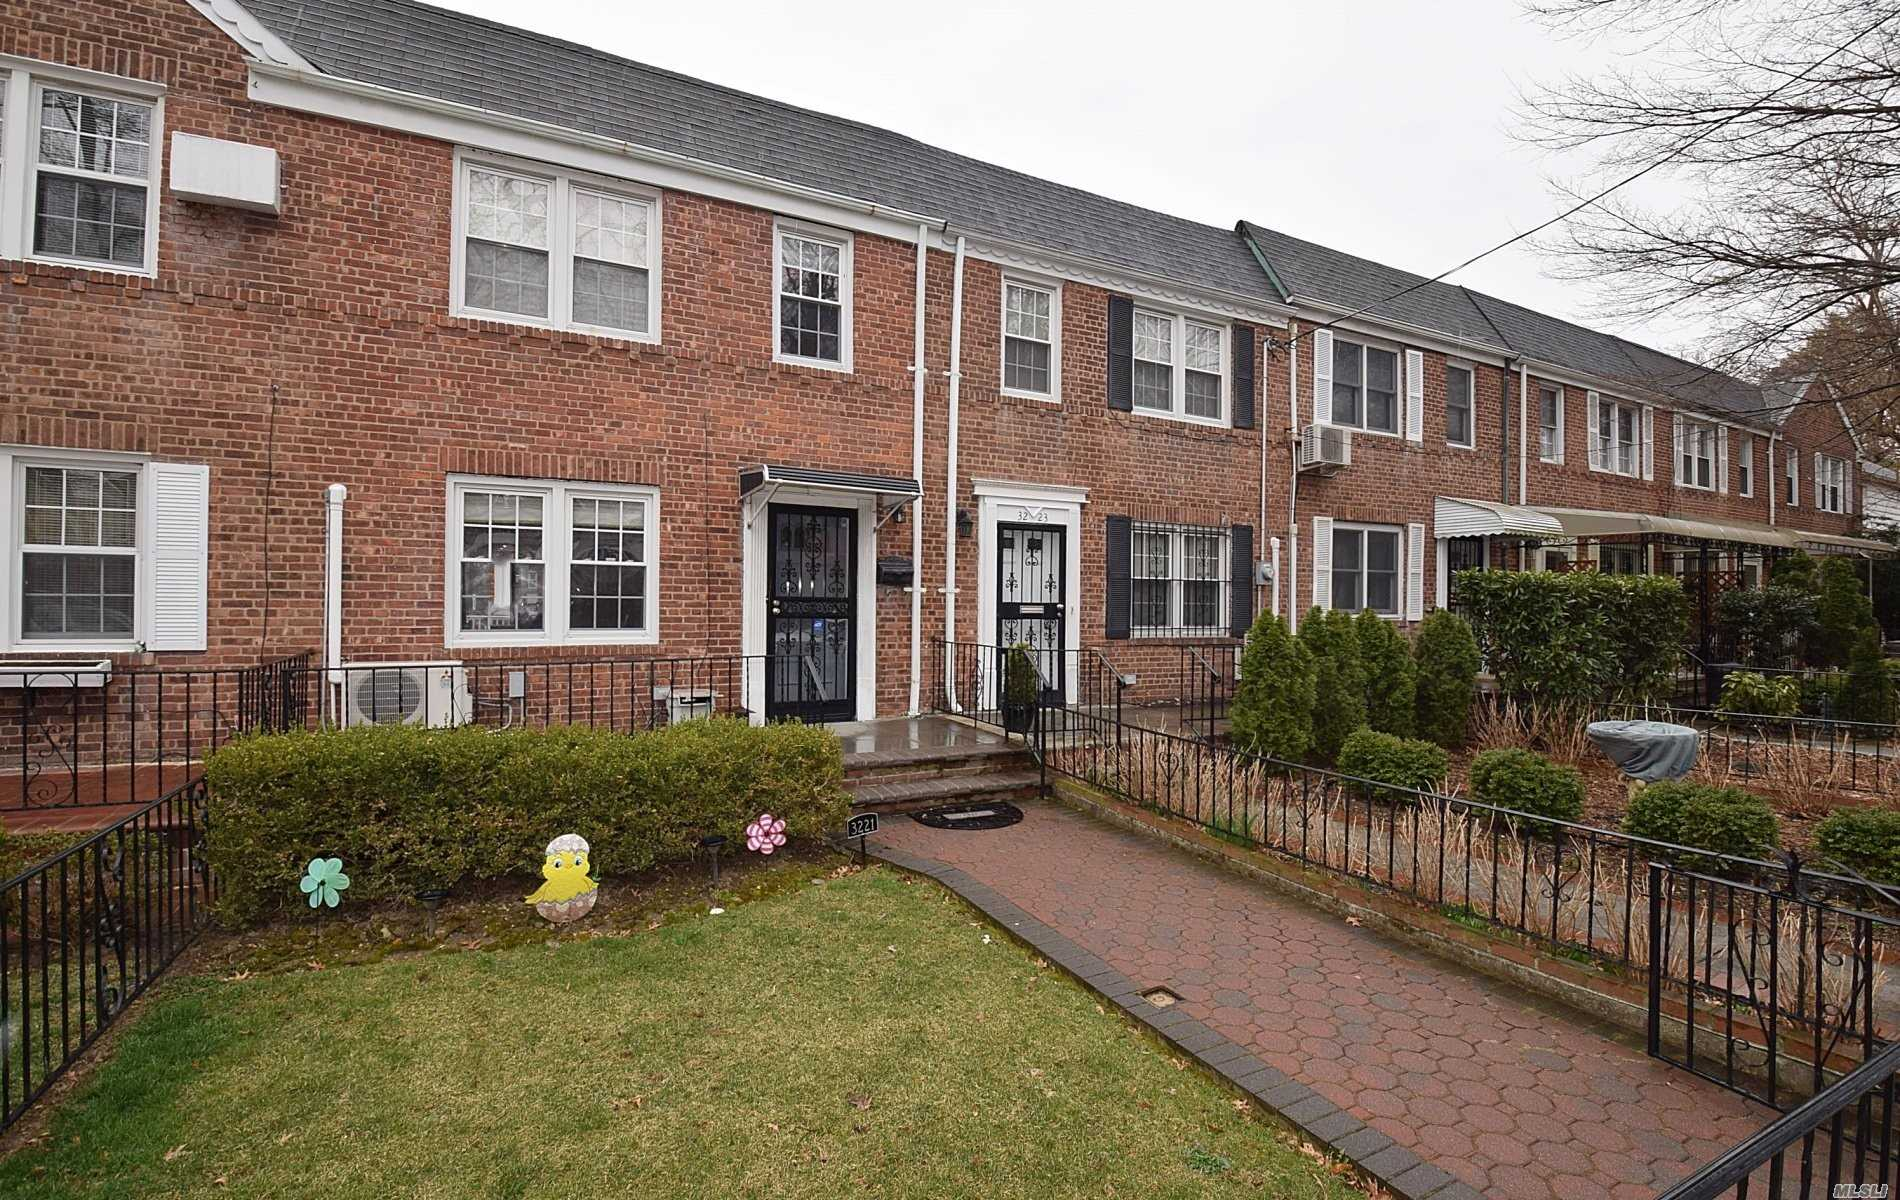 Move In Ready Home In The Sought After Murray Hill Section Of N. Flushing. This Home Features 3 Bedrooms, Double Sink & Jacuzzi Tub All New Bathroom, Formal Dining Room W/Sliders, Beautiful Kitchen W/SS Appliances, Granite Counter-tops, Large Living Room, Oak H/W Floors Throughout, Full Finished Basement With Additional Full Bath, OSE To Driveway, Private Storage And Beautiful Yard. Close To Everything!! Don't Miss This Gem!!